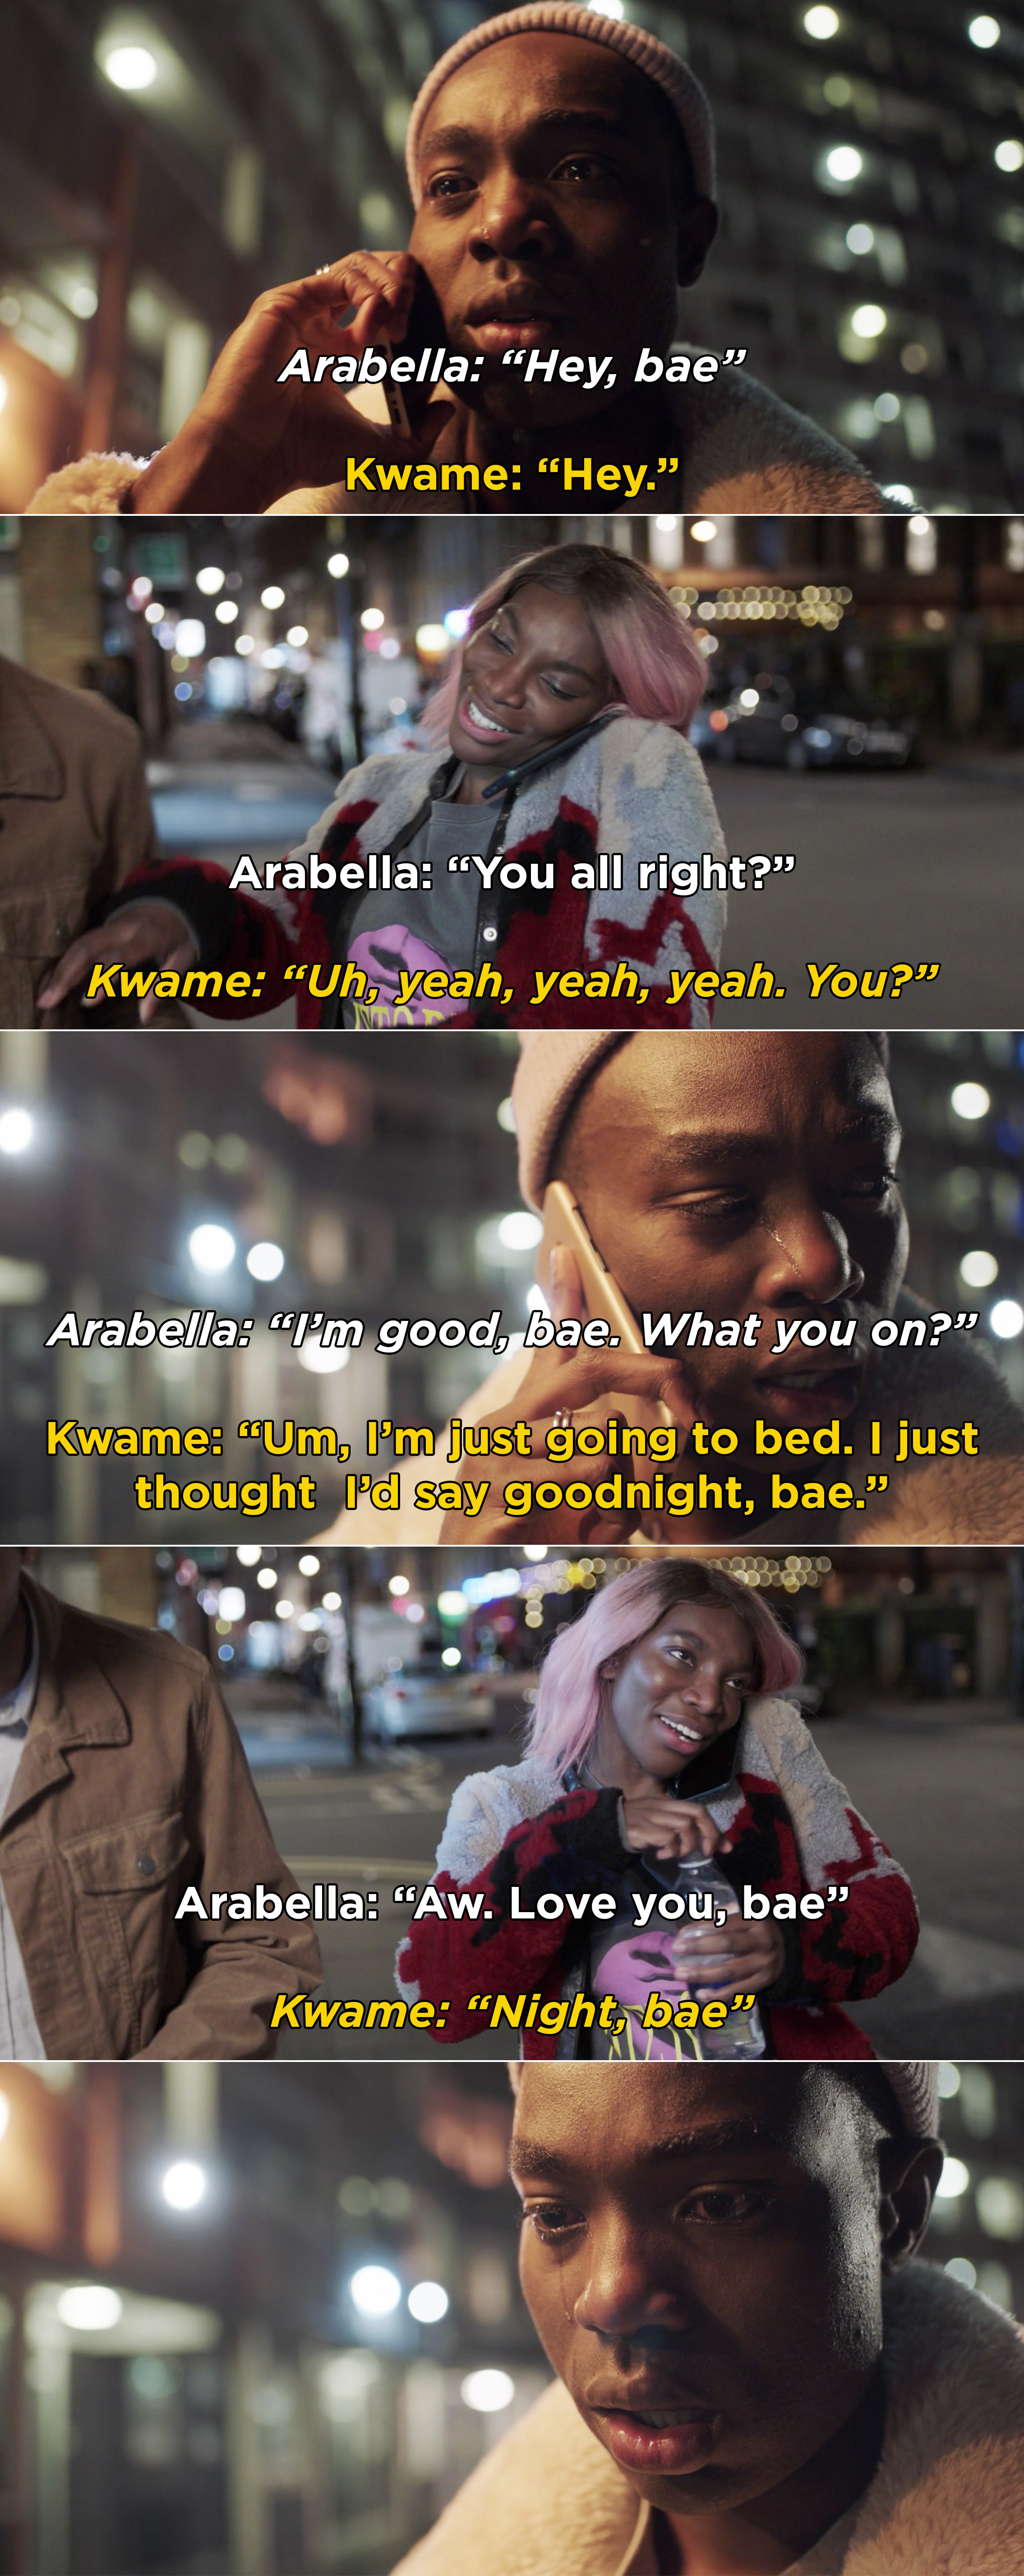 Kwame calling Arabella  after his sexual assault and being unable to talk about it, but simply saying goodnight to her and holding back tears